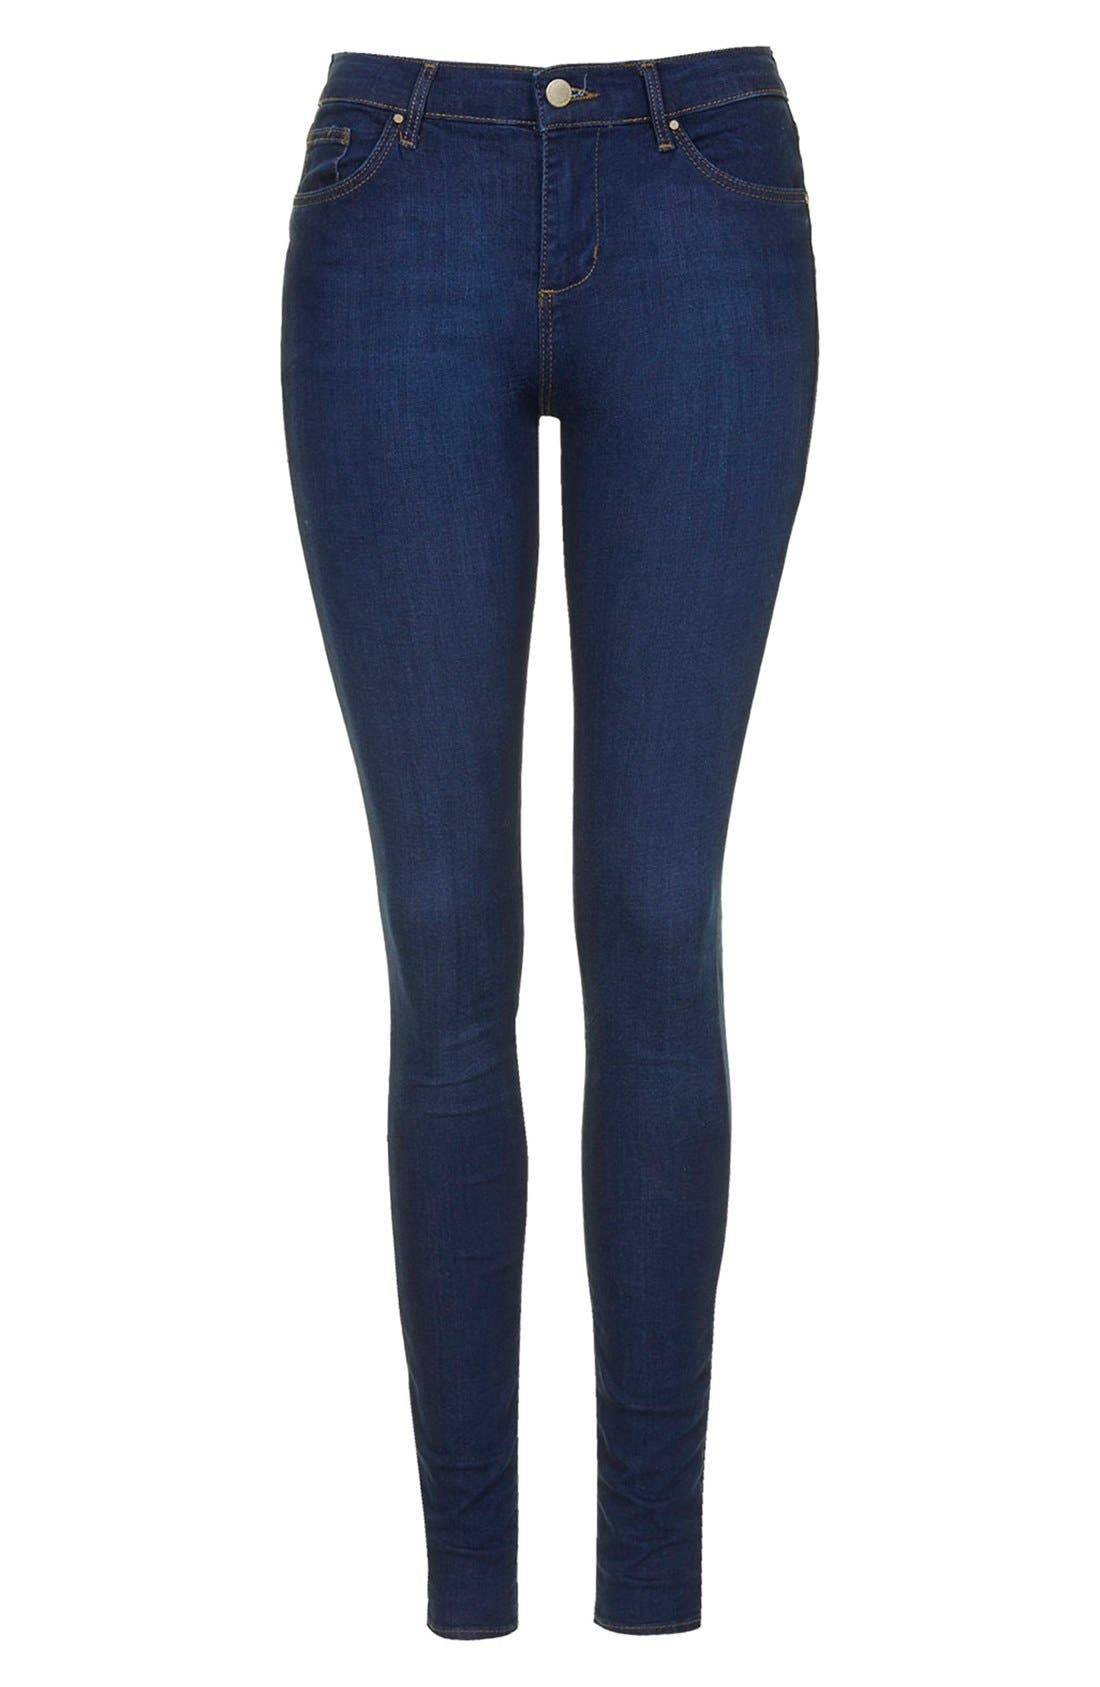 TOPSHOP, Moto 'Leigh' Ankle Skinny Jeans, Alternate thumbnail 6, color, 410